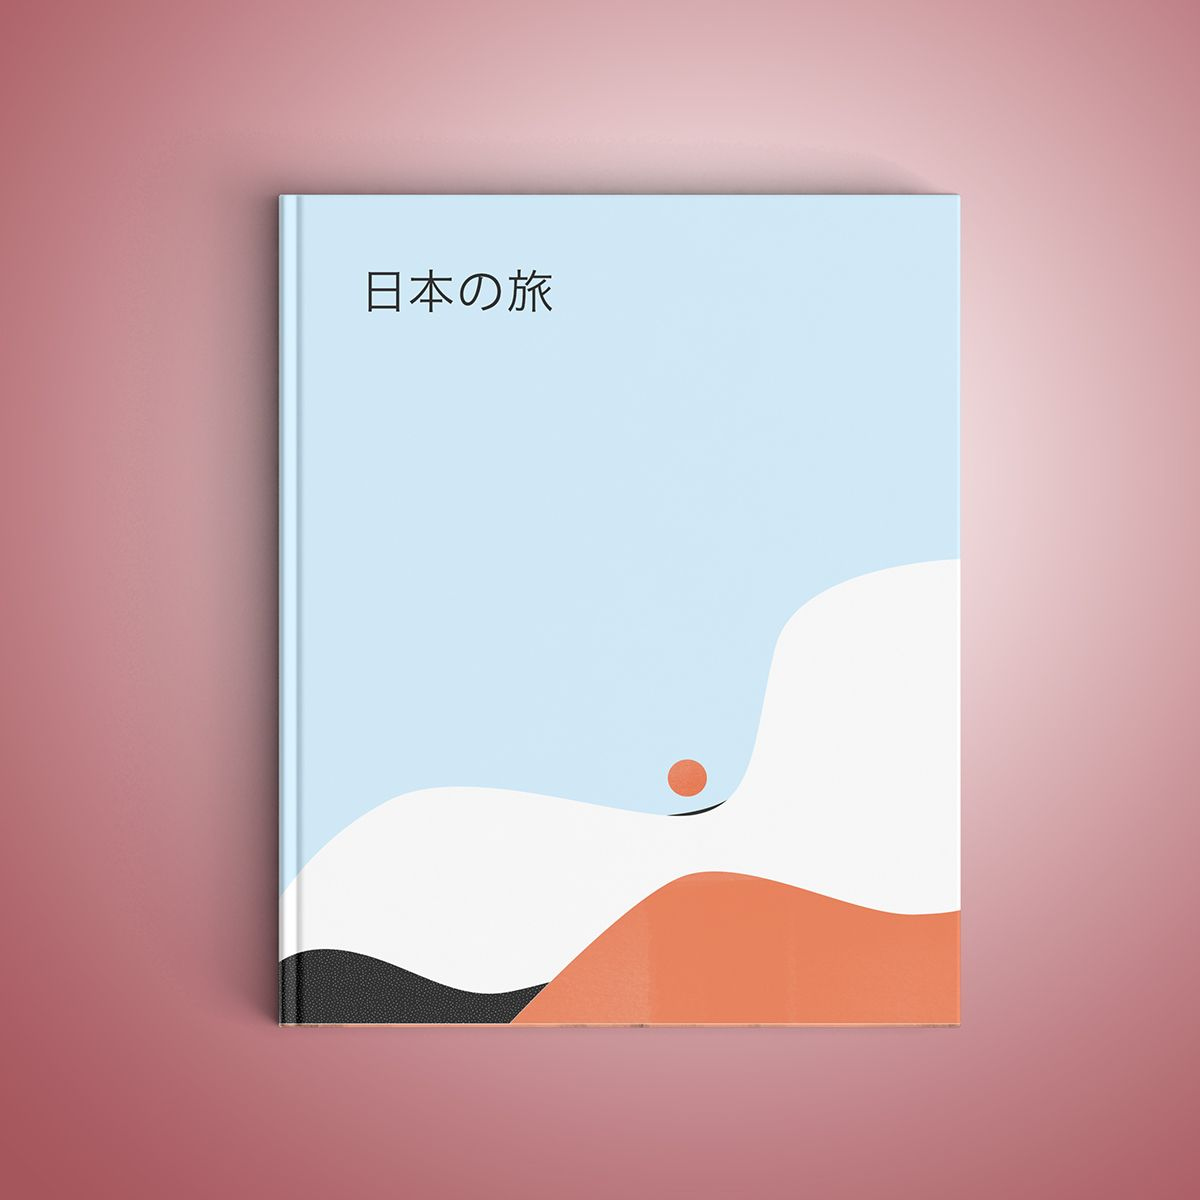 In Love With Japan Illustrations Illustration For Book About Japan Trip Minimalistic Illustration Ab Japan Illustration Minimalist Book Book Design Layout